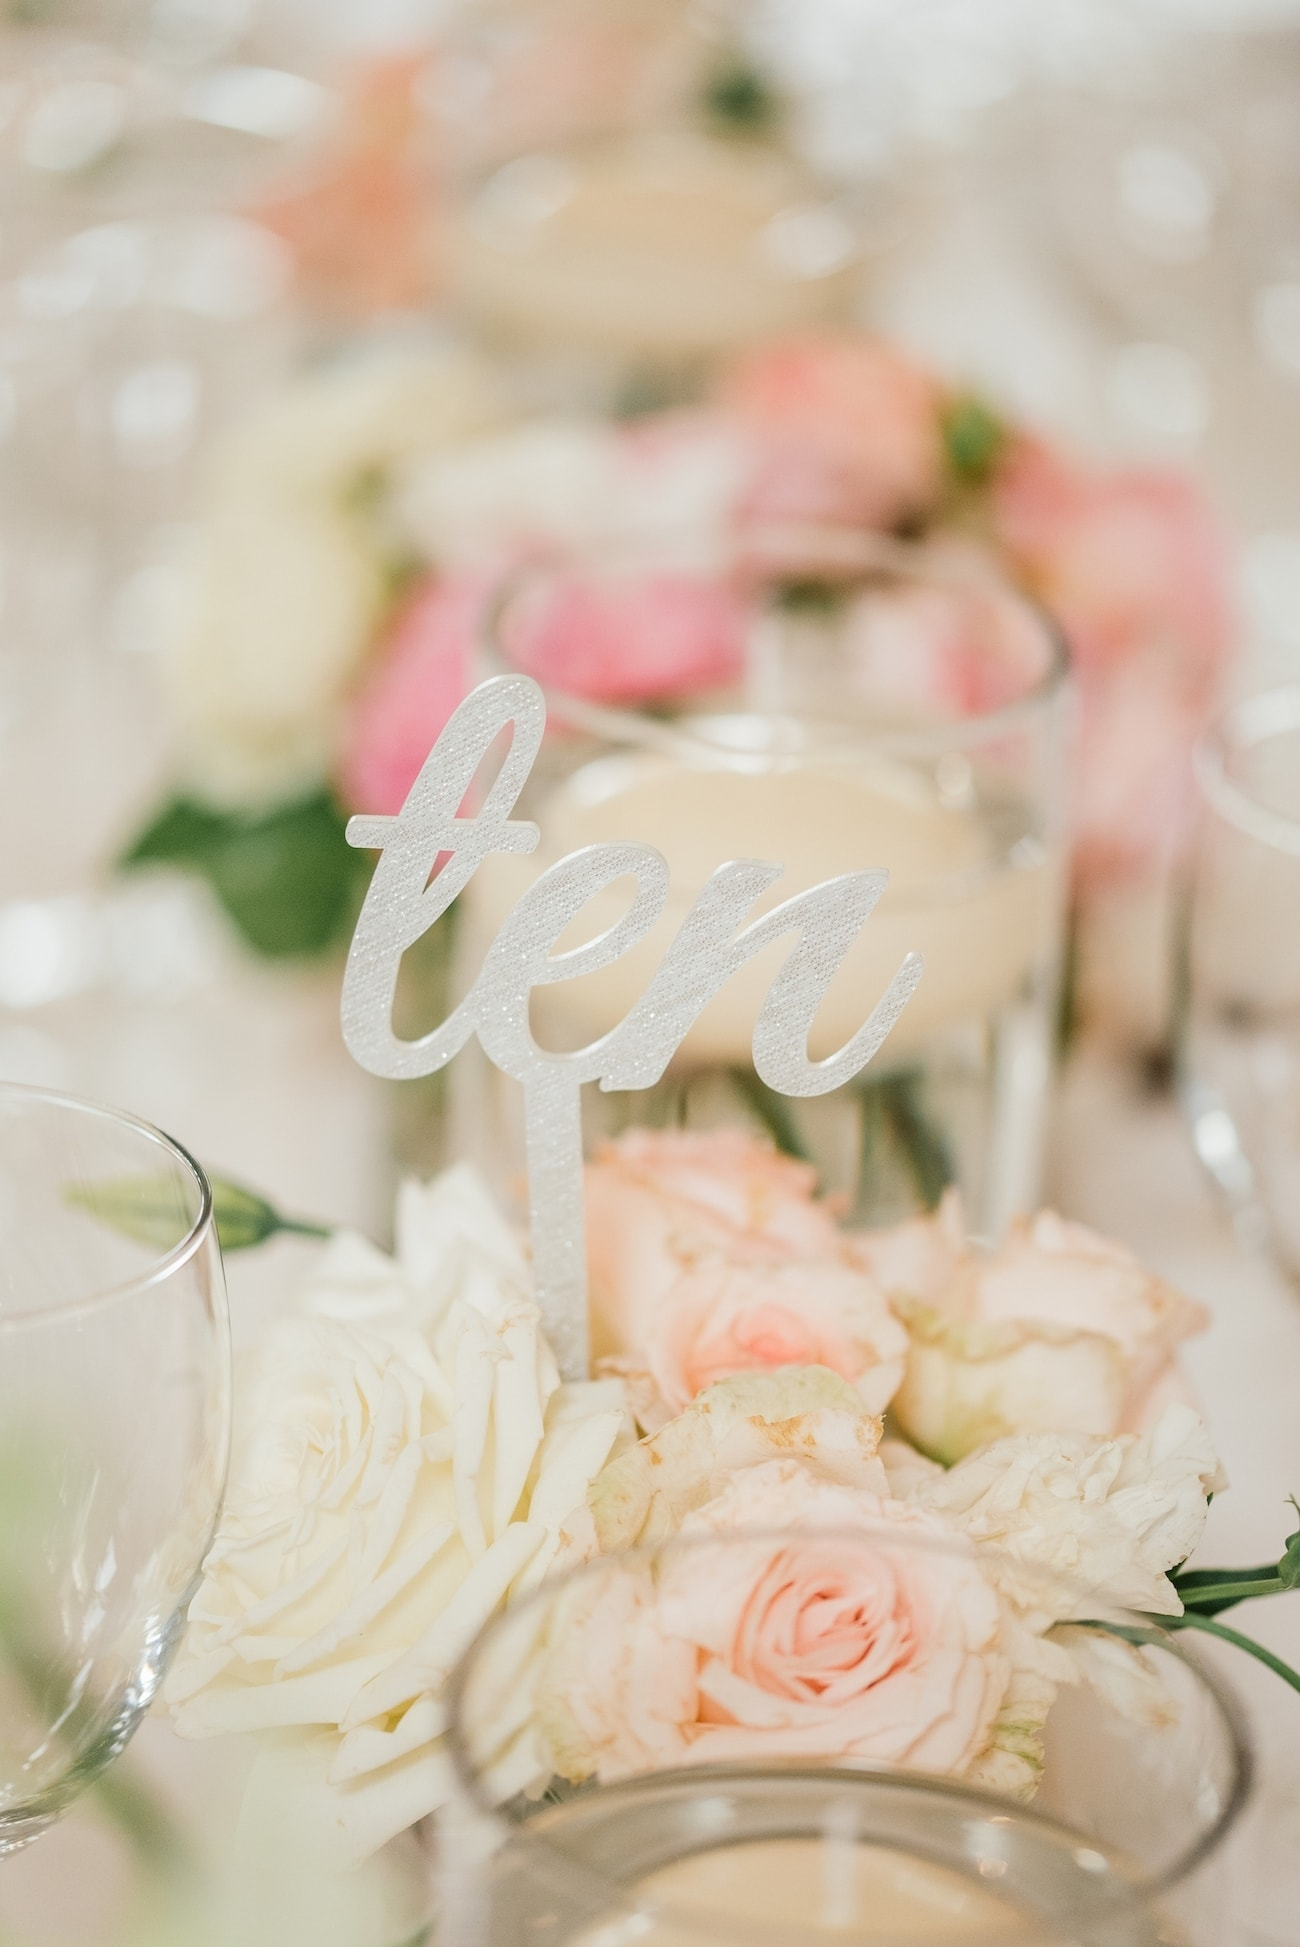 Garden Roses and Lasercut Table Number | Image: Carla Adel